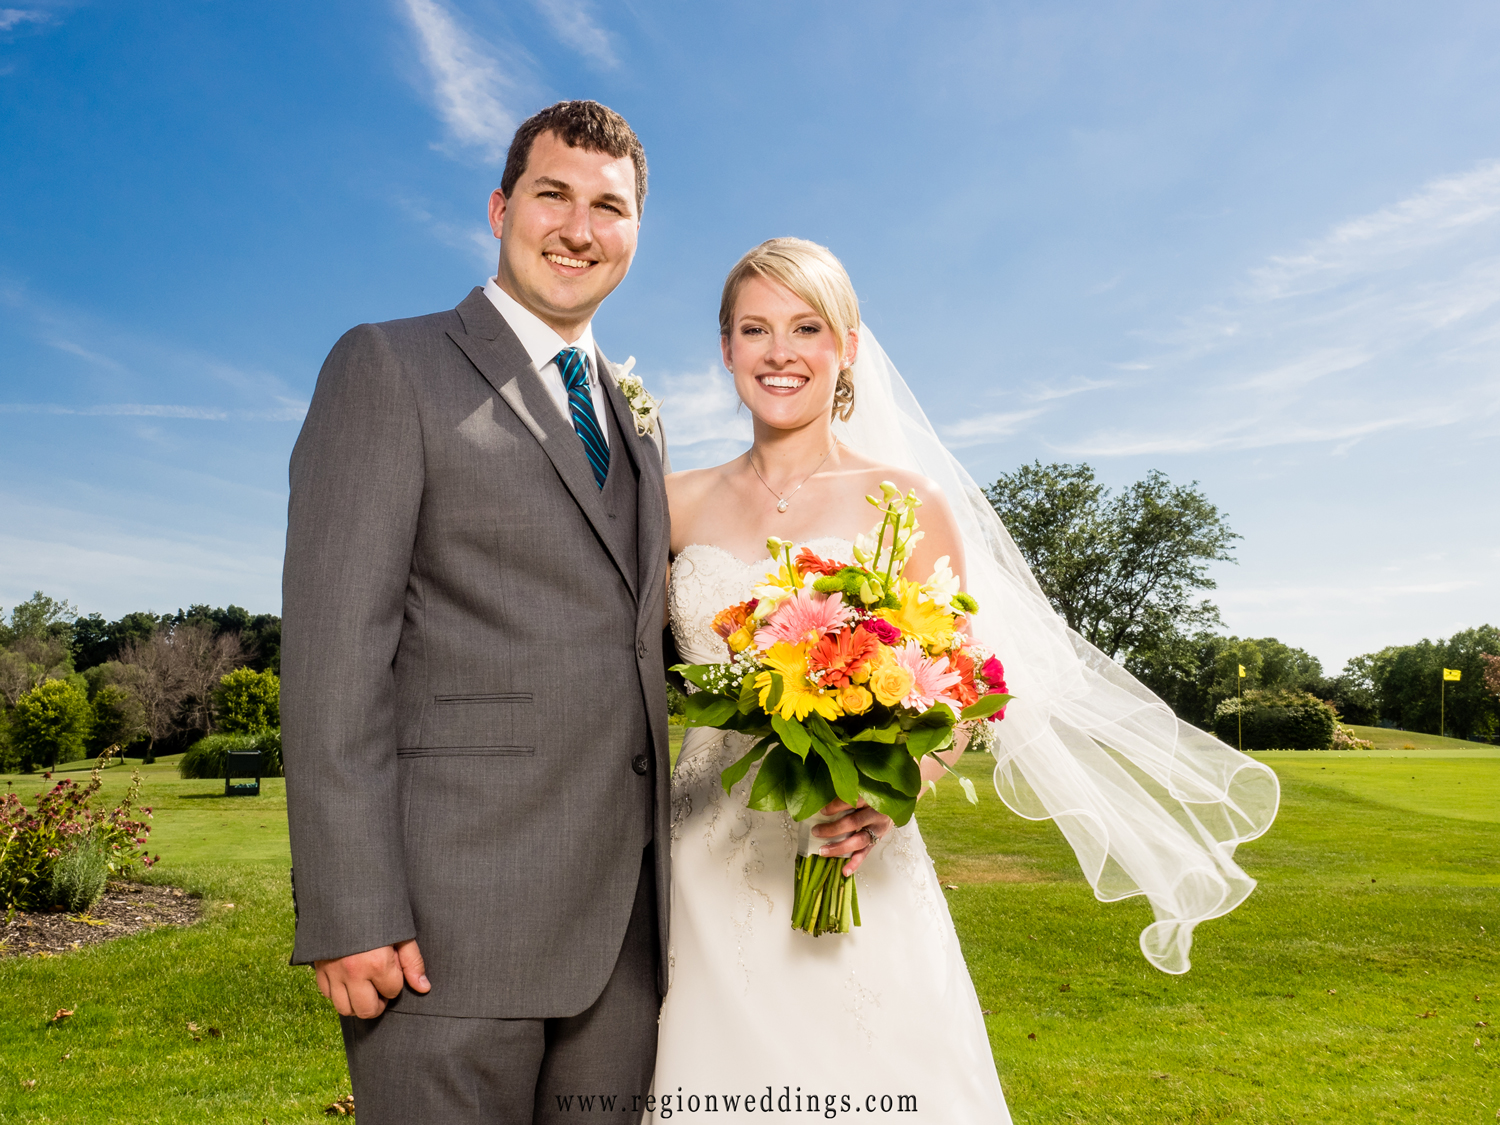 The bride and groom soak up the sun at Sand Creek Country Club.